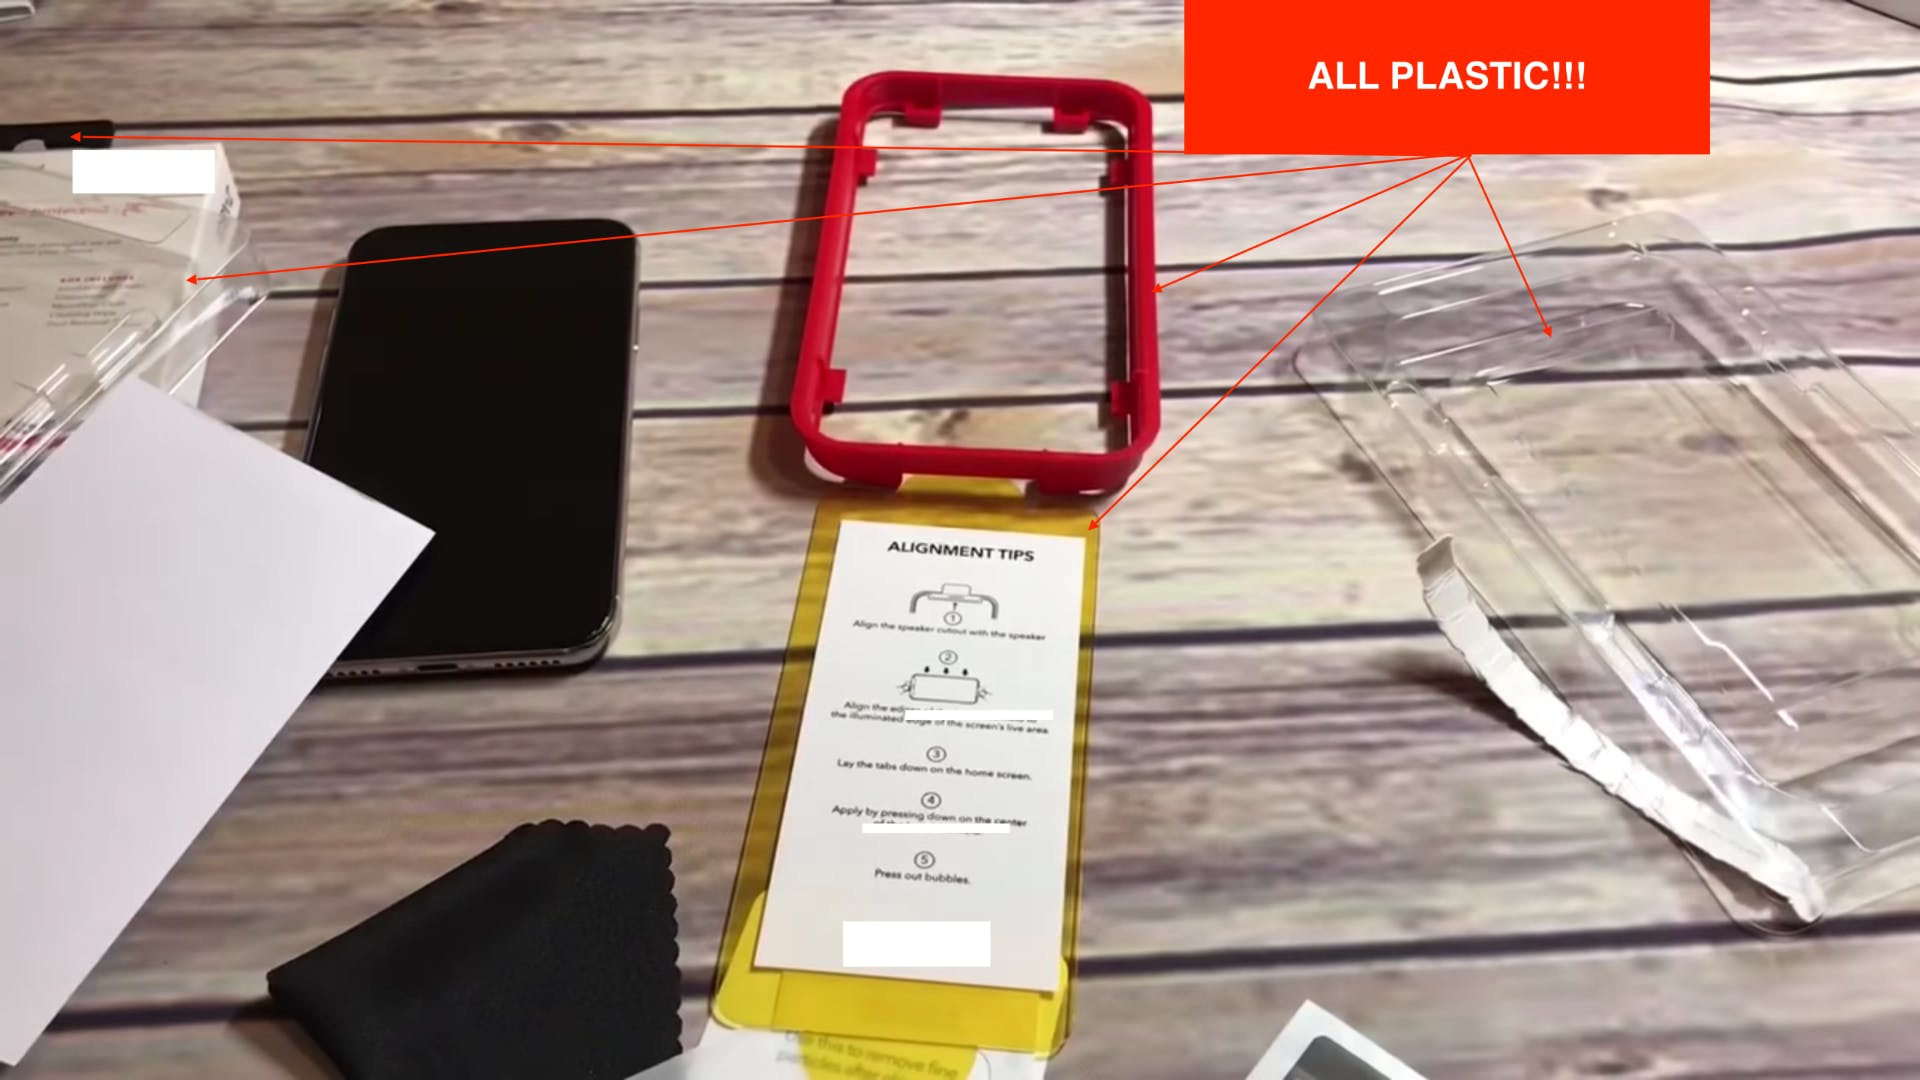 Conventional plastic screen protectors and the waste they produce